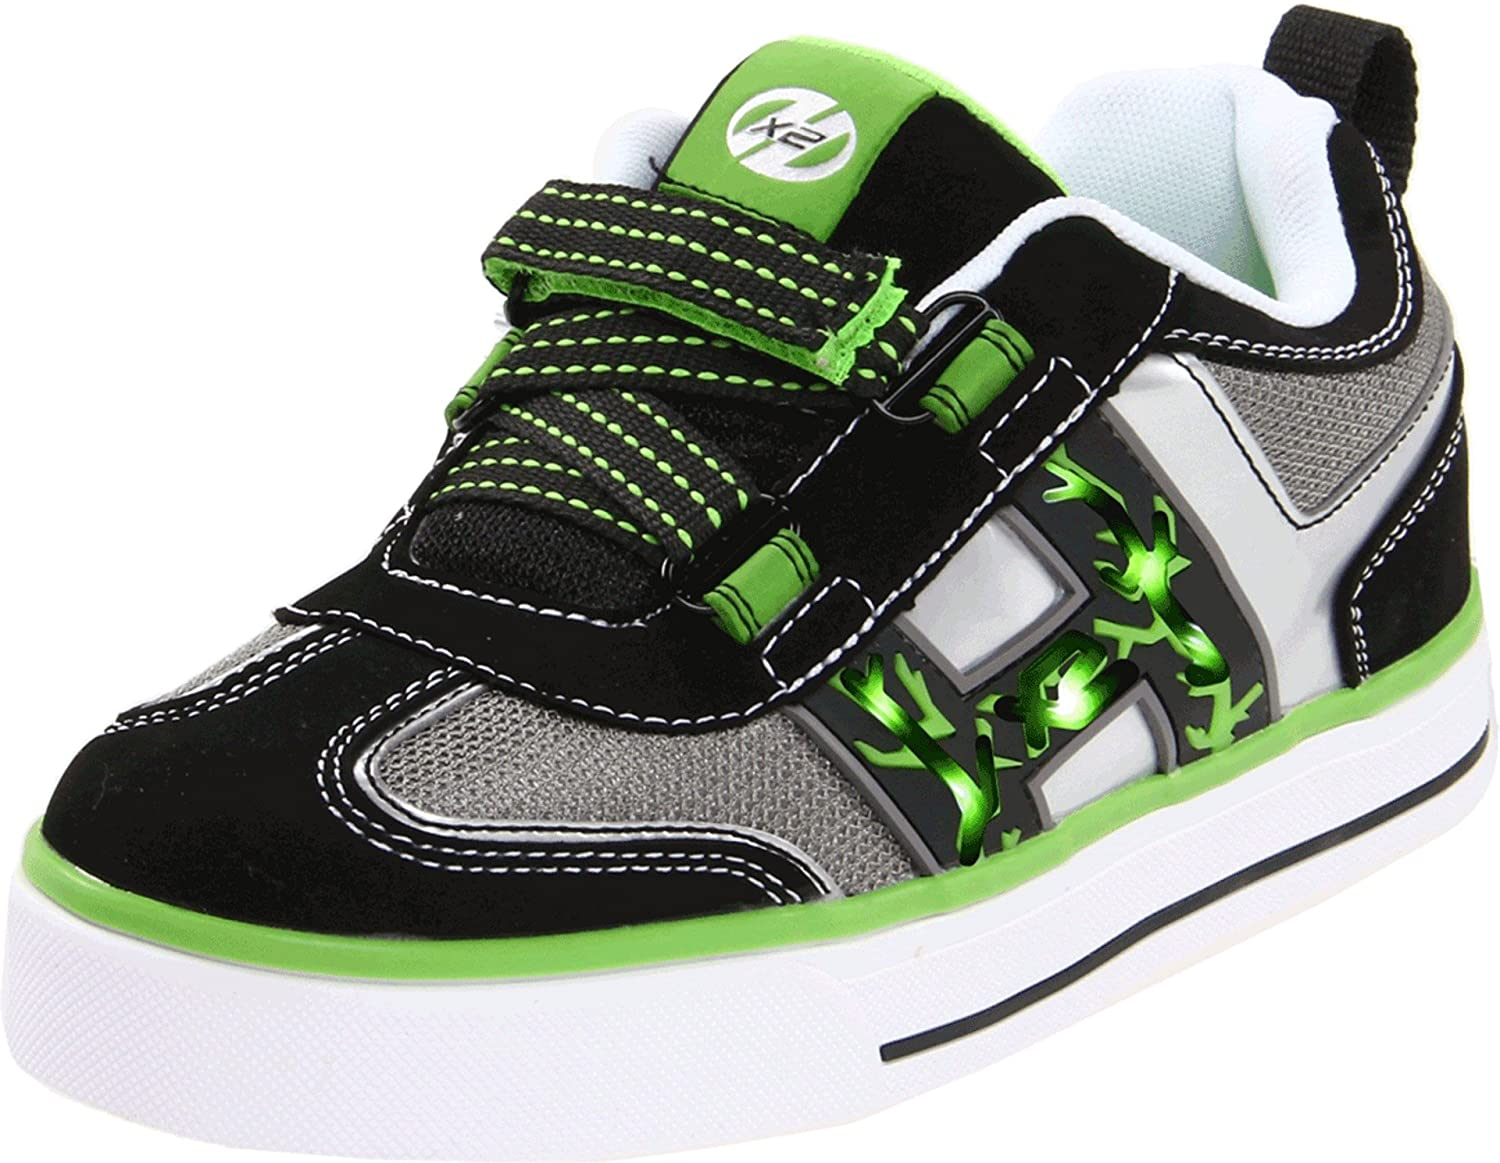 Heelys HX2 Bolt Lighted Skate Shoe (Little Kid/Big Kid) Black/White/Green/Silver 13 M US Little Kid HX2 Bolt - K